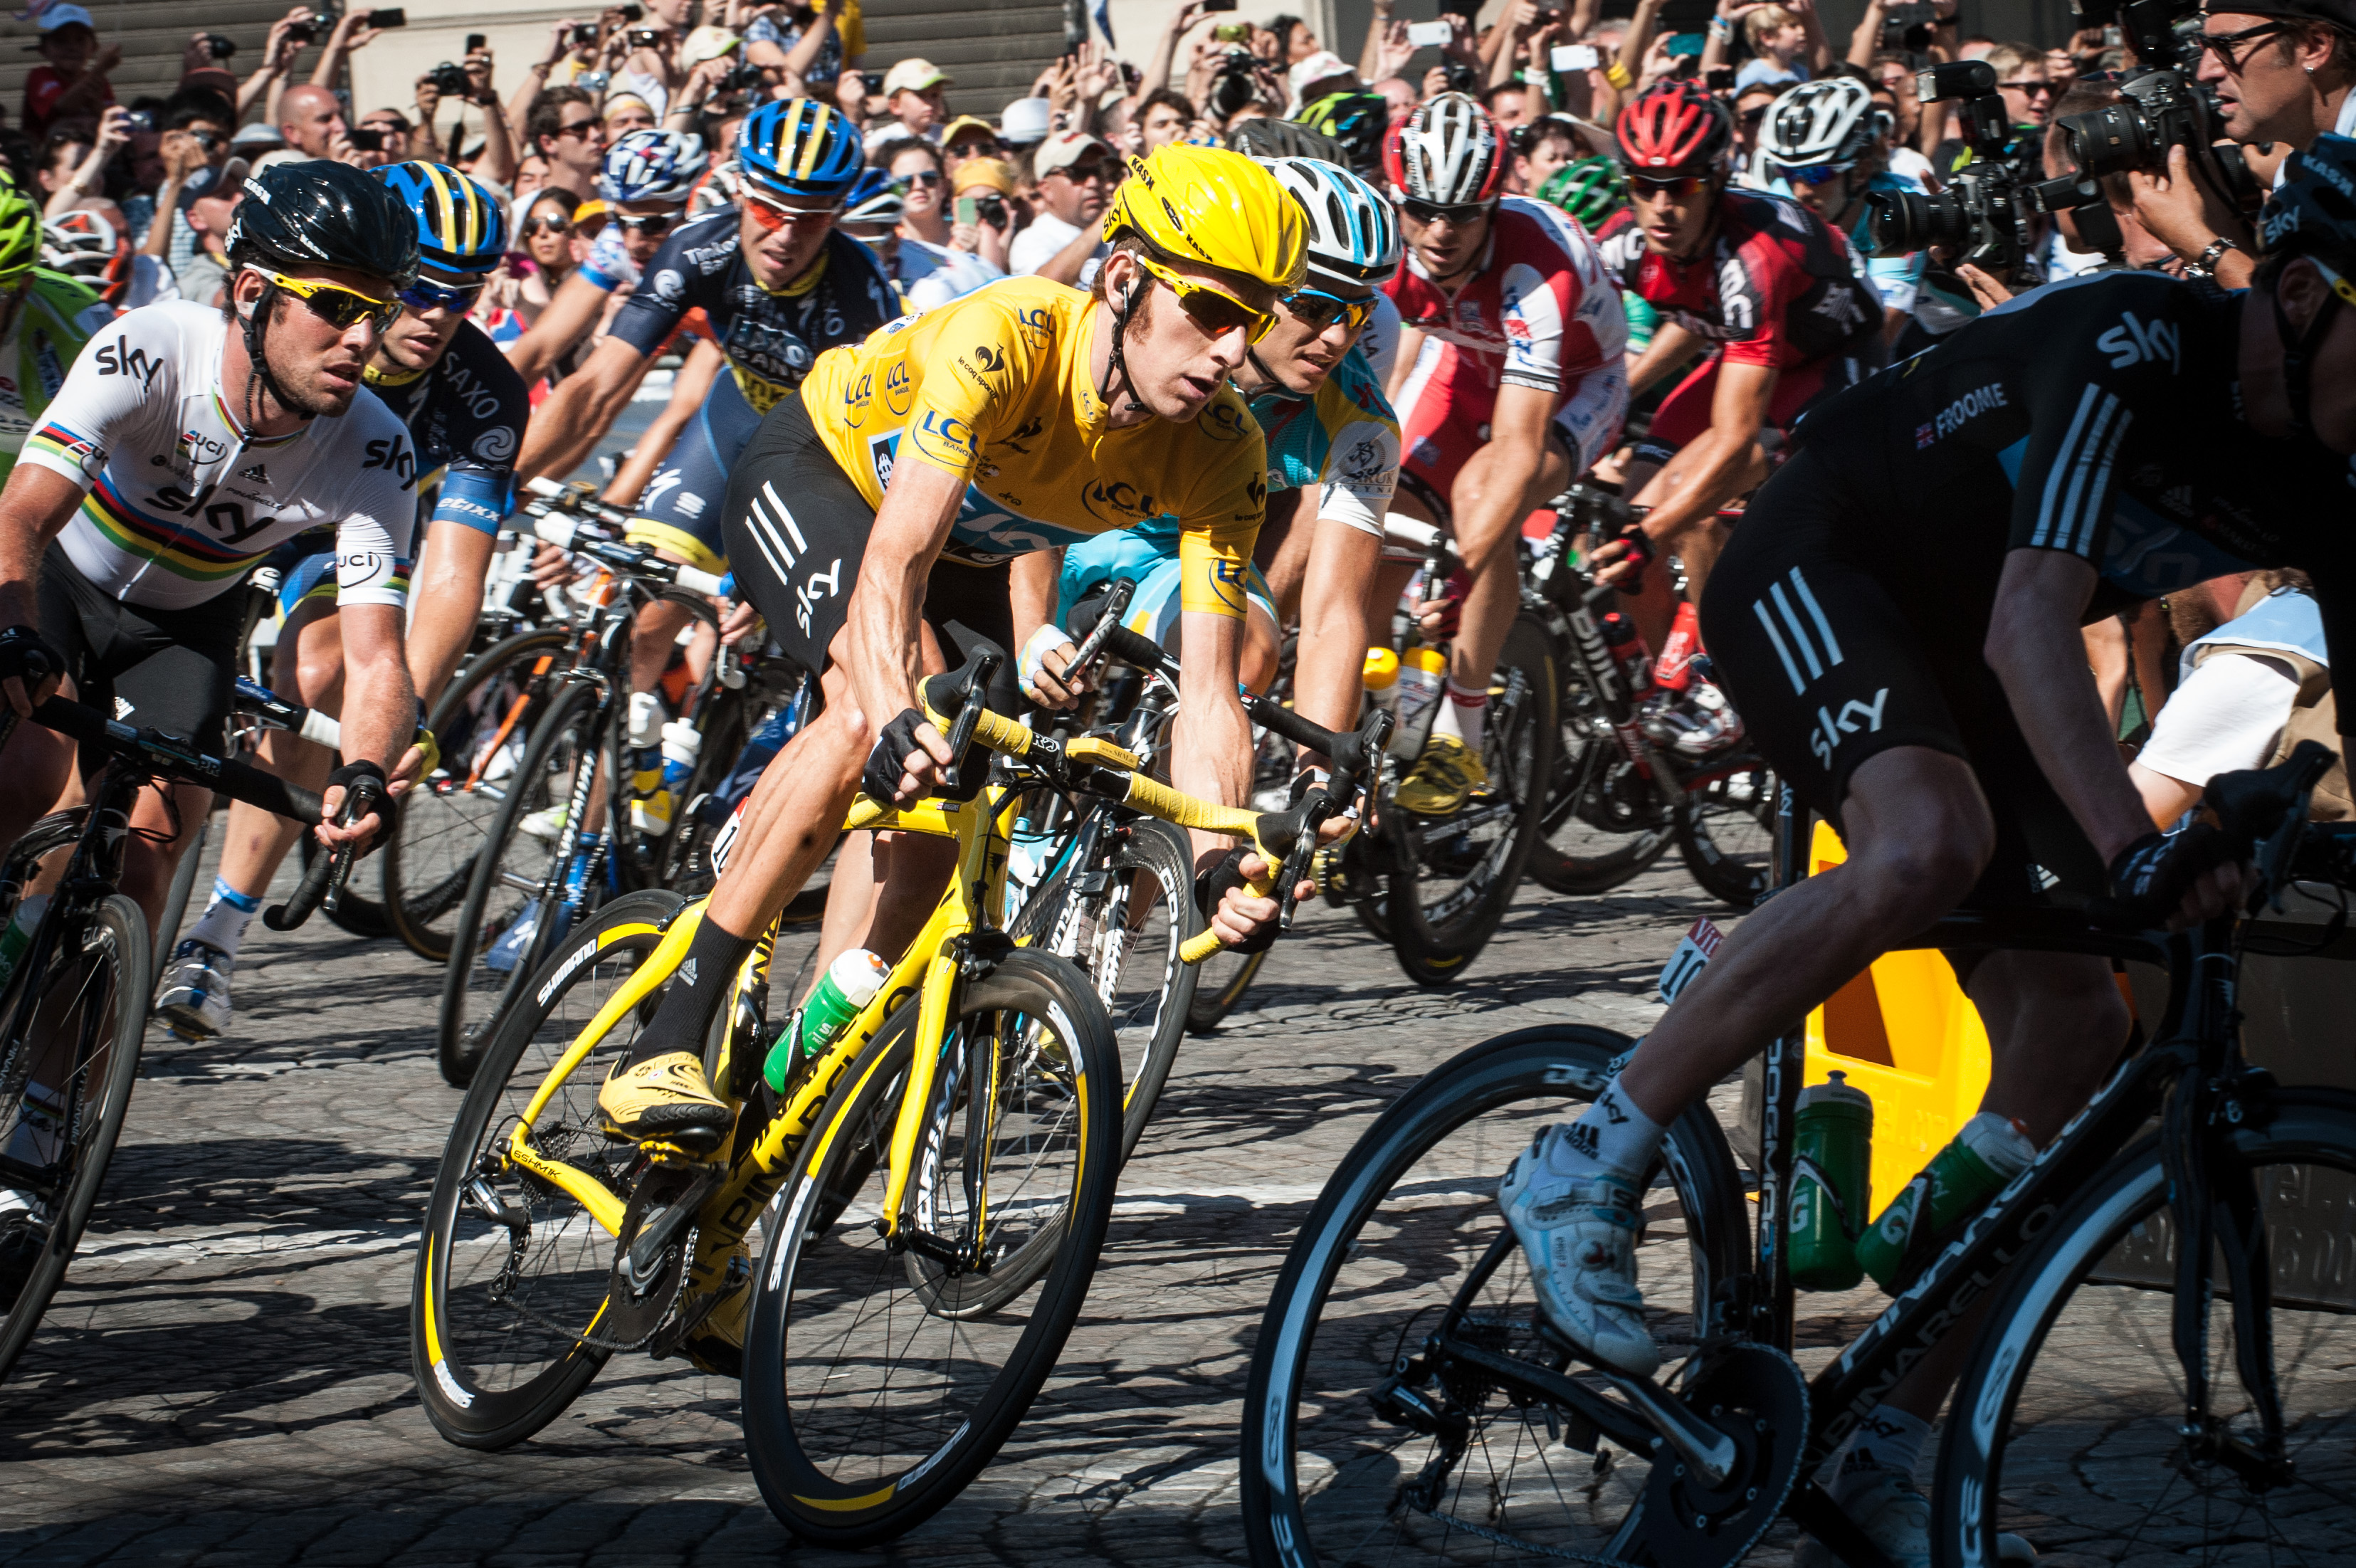 Tour De France HD Wallpapers 881 Wallpaper Viewallpapercom 3310x2203